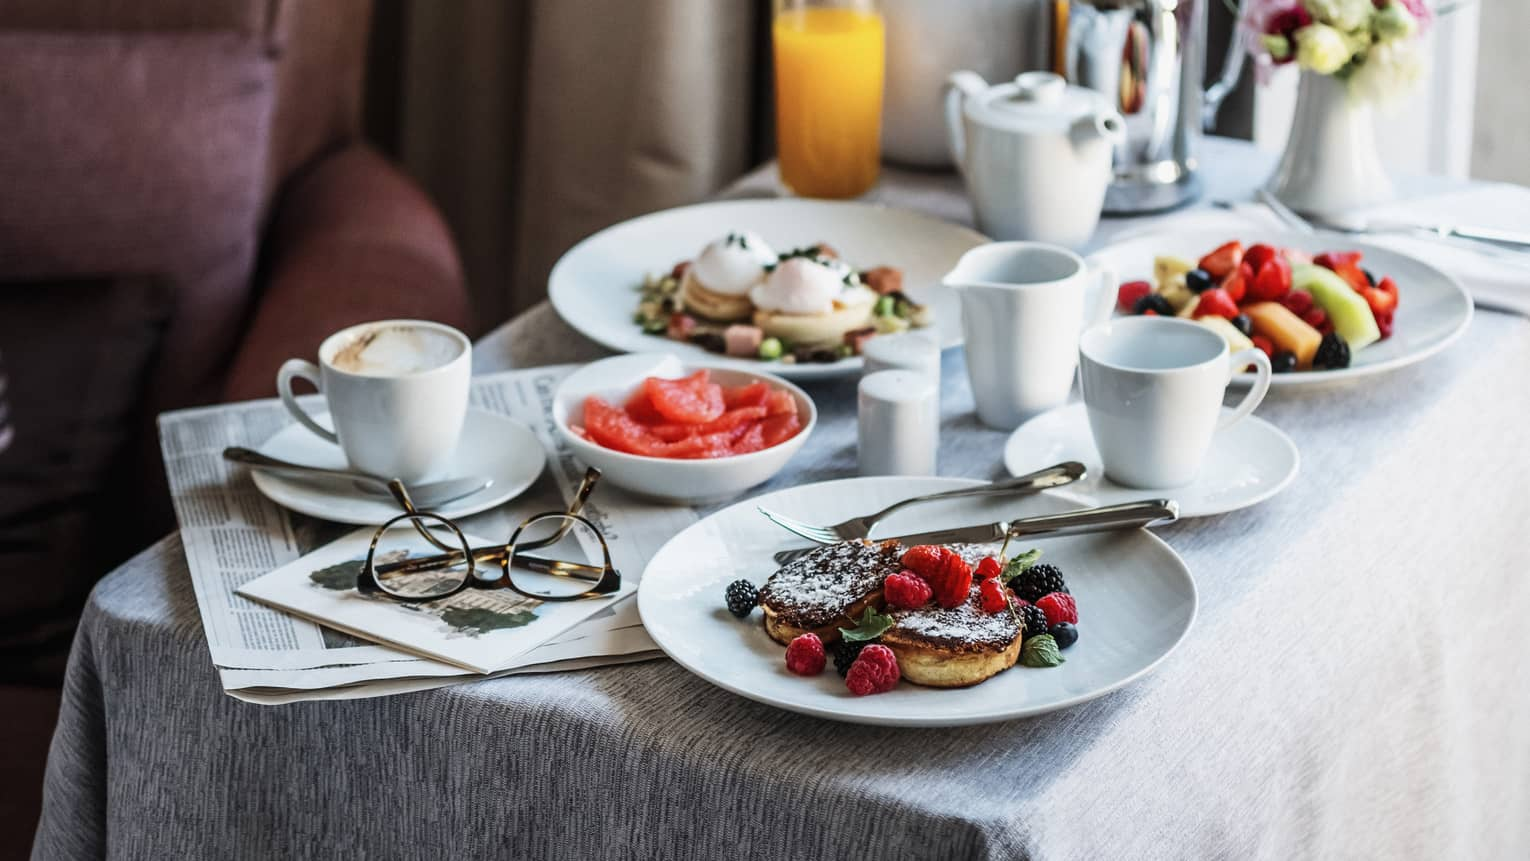 Breakfast dishes on white round dishes, square white table, orange juice, coffee, eyeglasses